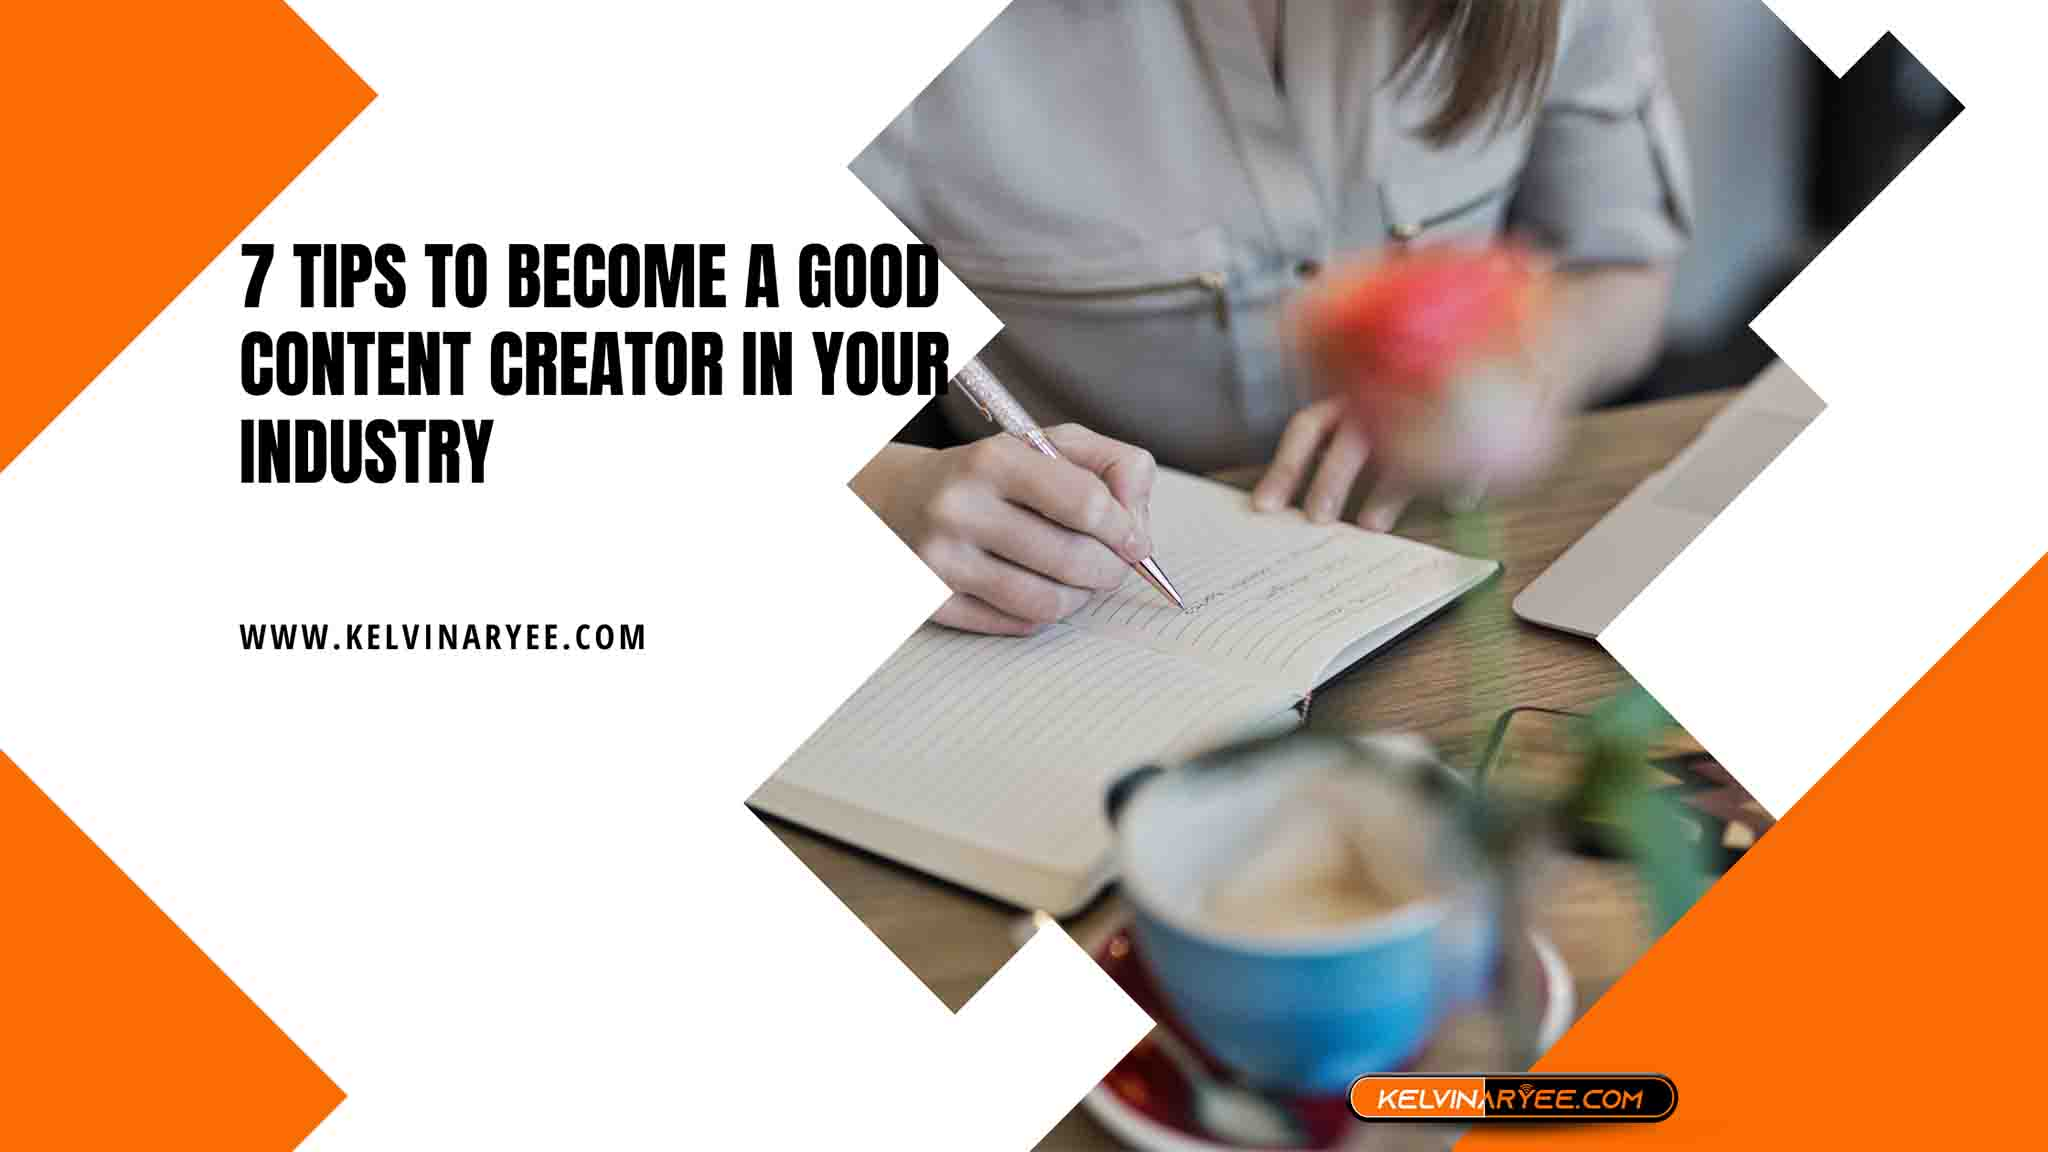 7 Tips To Become A Good Content Creator In Your Industry